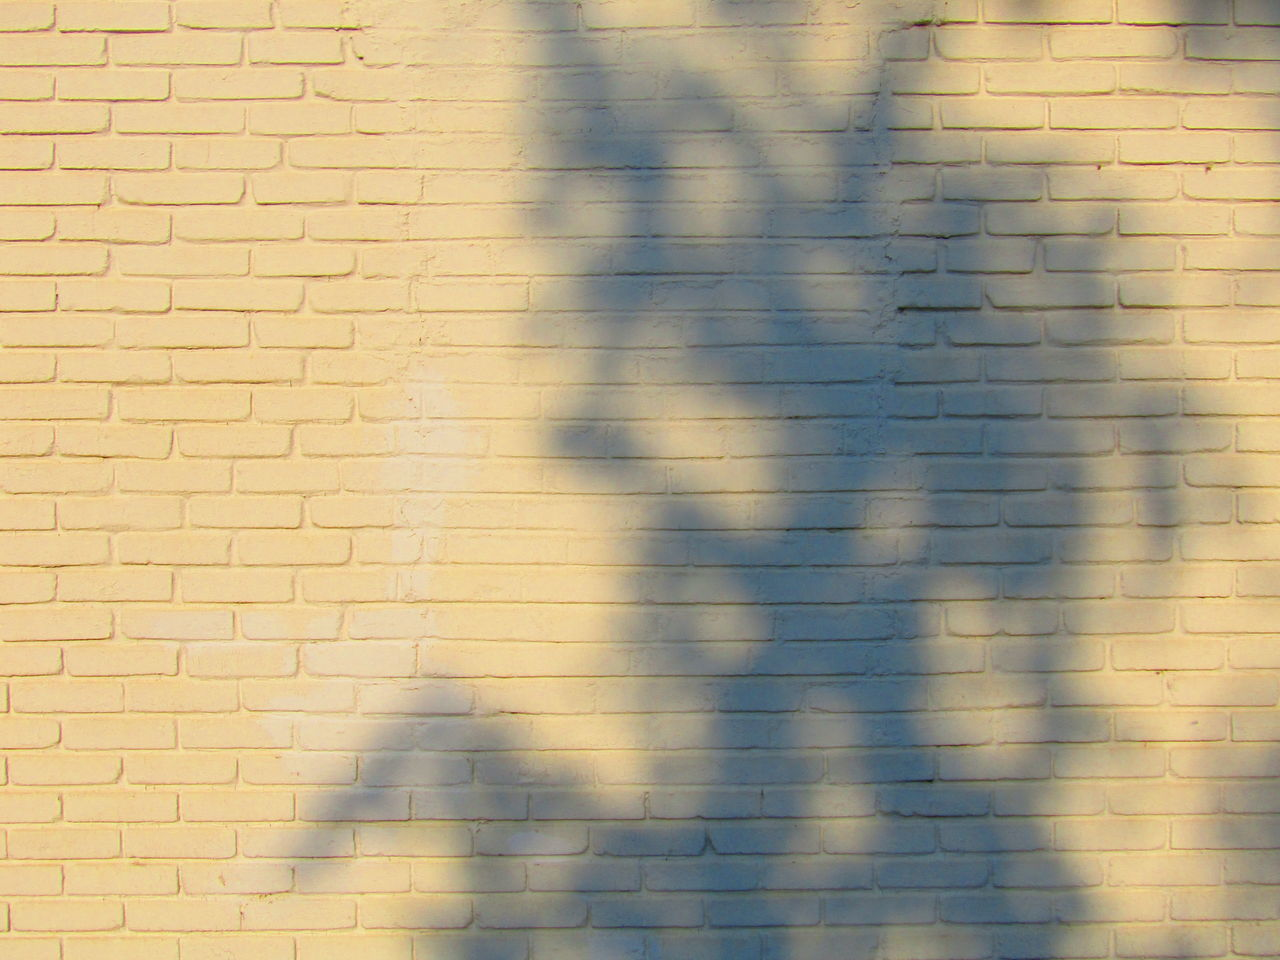 Ziegel Brick Wall Brick Wall Wand Shadow Full Frame Abstract Pattern Backgrounds Textured